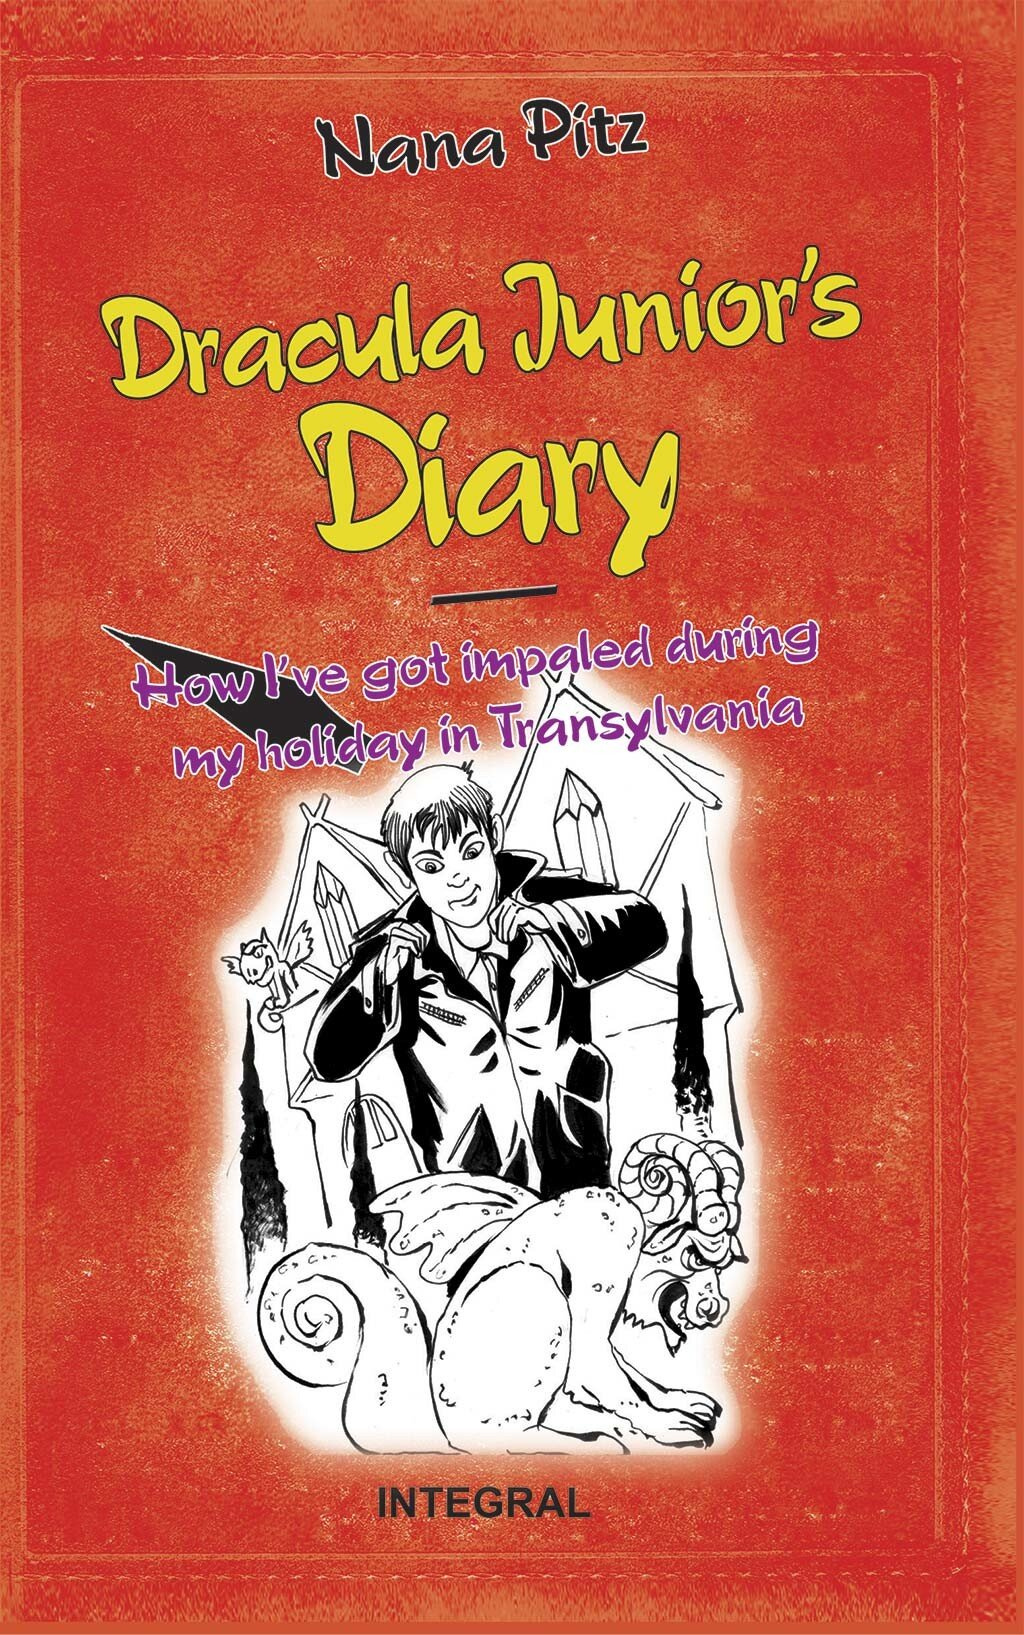 Dracula Junior's Diary. How I've got impaled during my holiday in Transylvania (eBook)